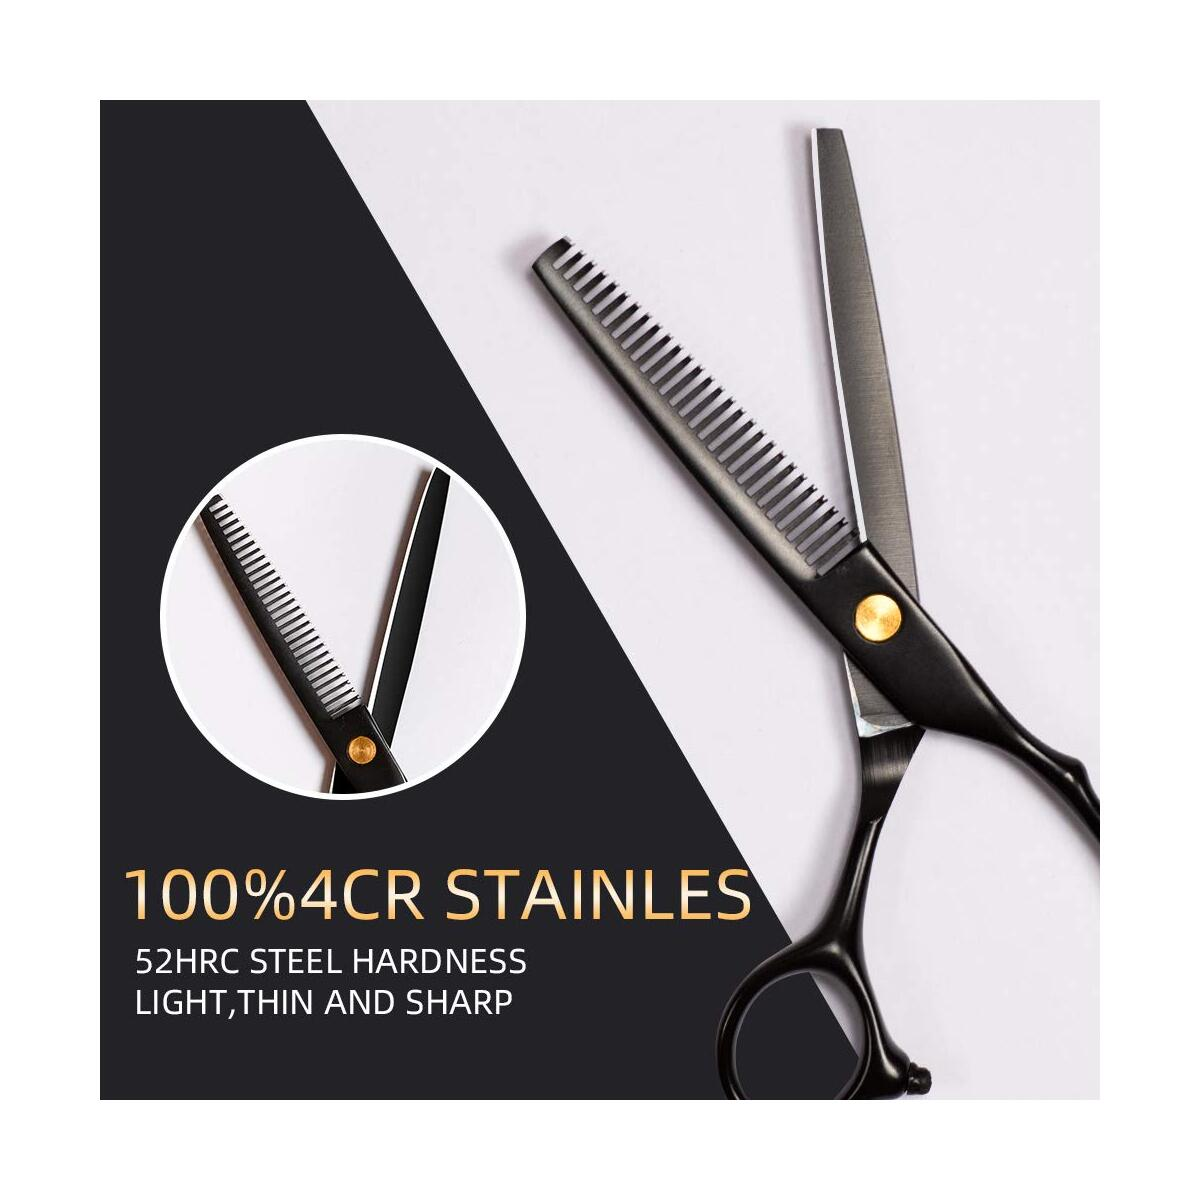 Hair Cutting Scissors Set 10 Pcs Hairdressing Scissors Kit Thinning Shears Clips Cape,Professional Barber Salon Home Shear Kit with Fine Adjustment Tension Screw Japanese Stainless Steel